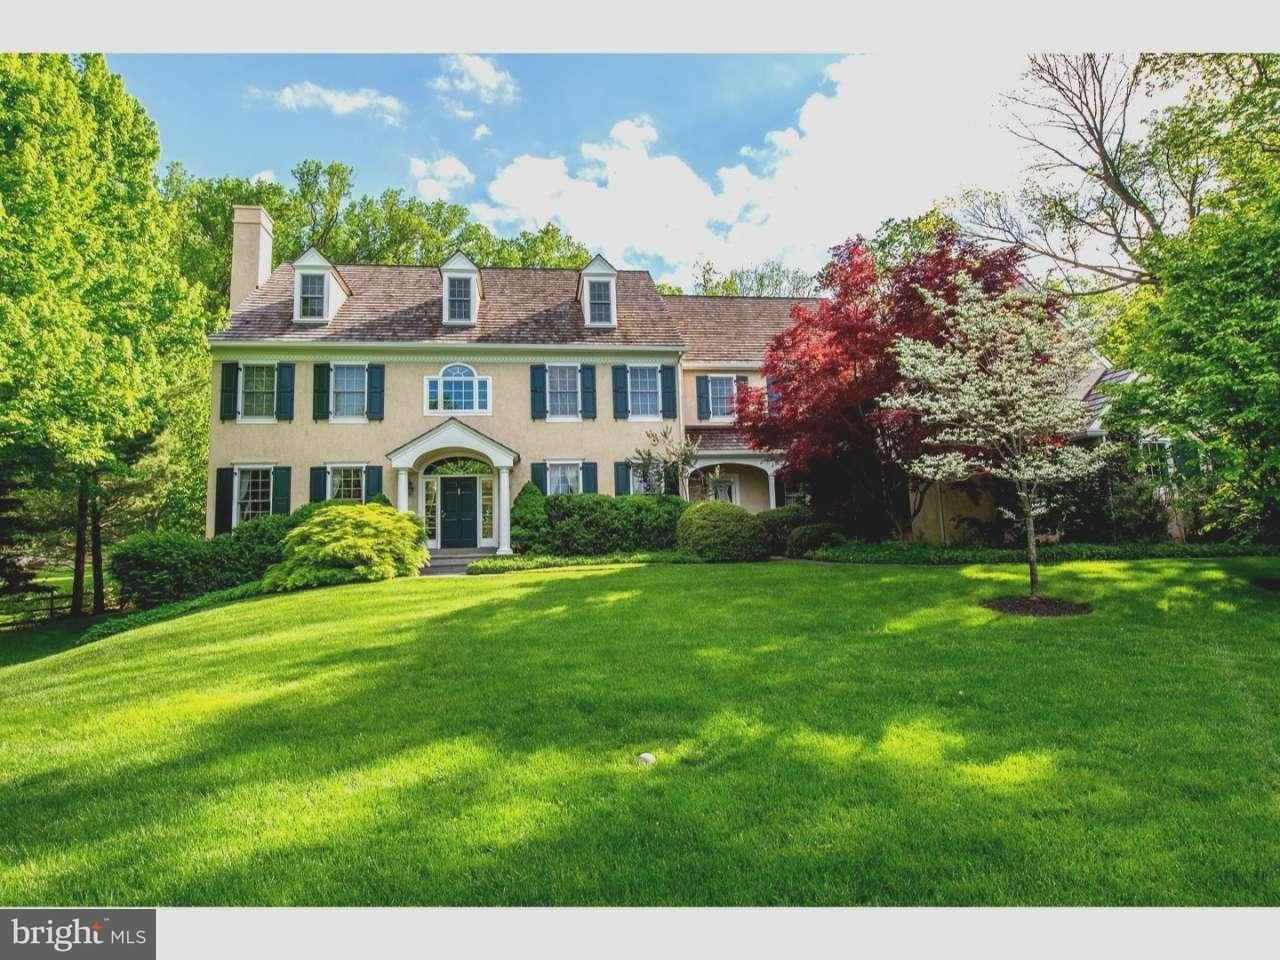 Single Family Home for Sale at 109 OVERLOOK Lane Wayne, Pennsylvania 19087 United States